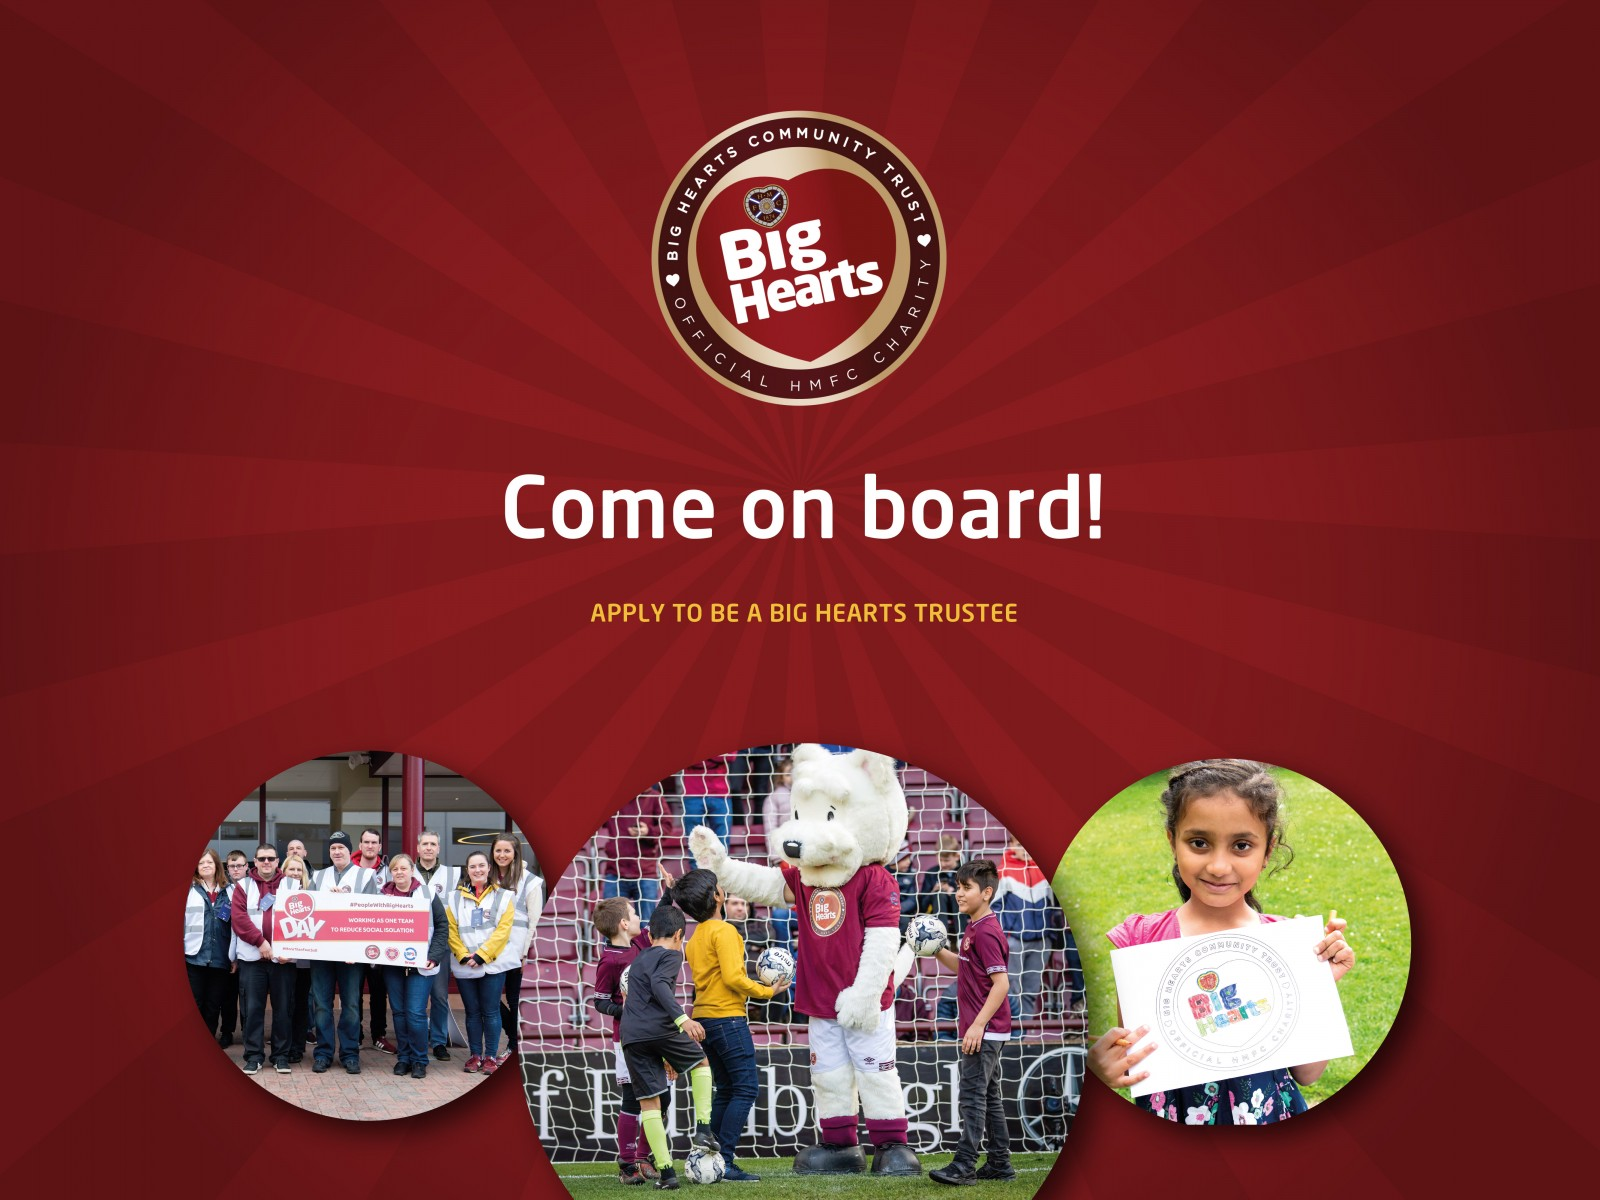 » Come on board – Big Hearts is looking for 2 new Trustees!